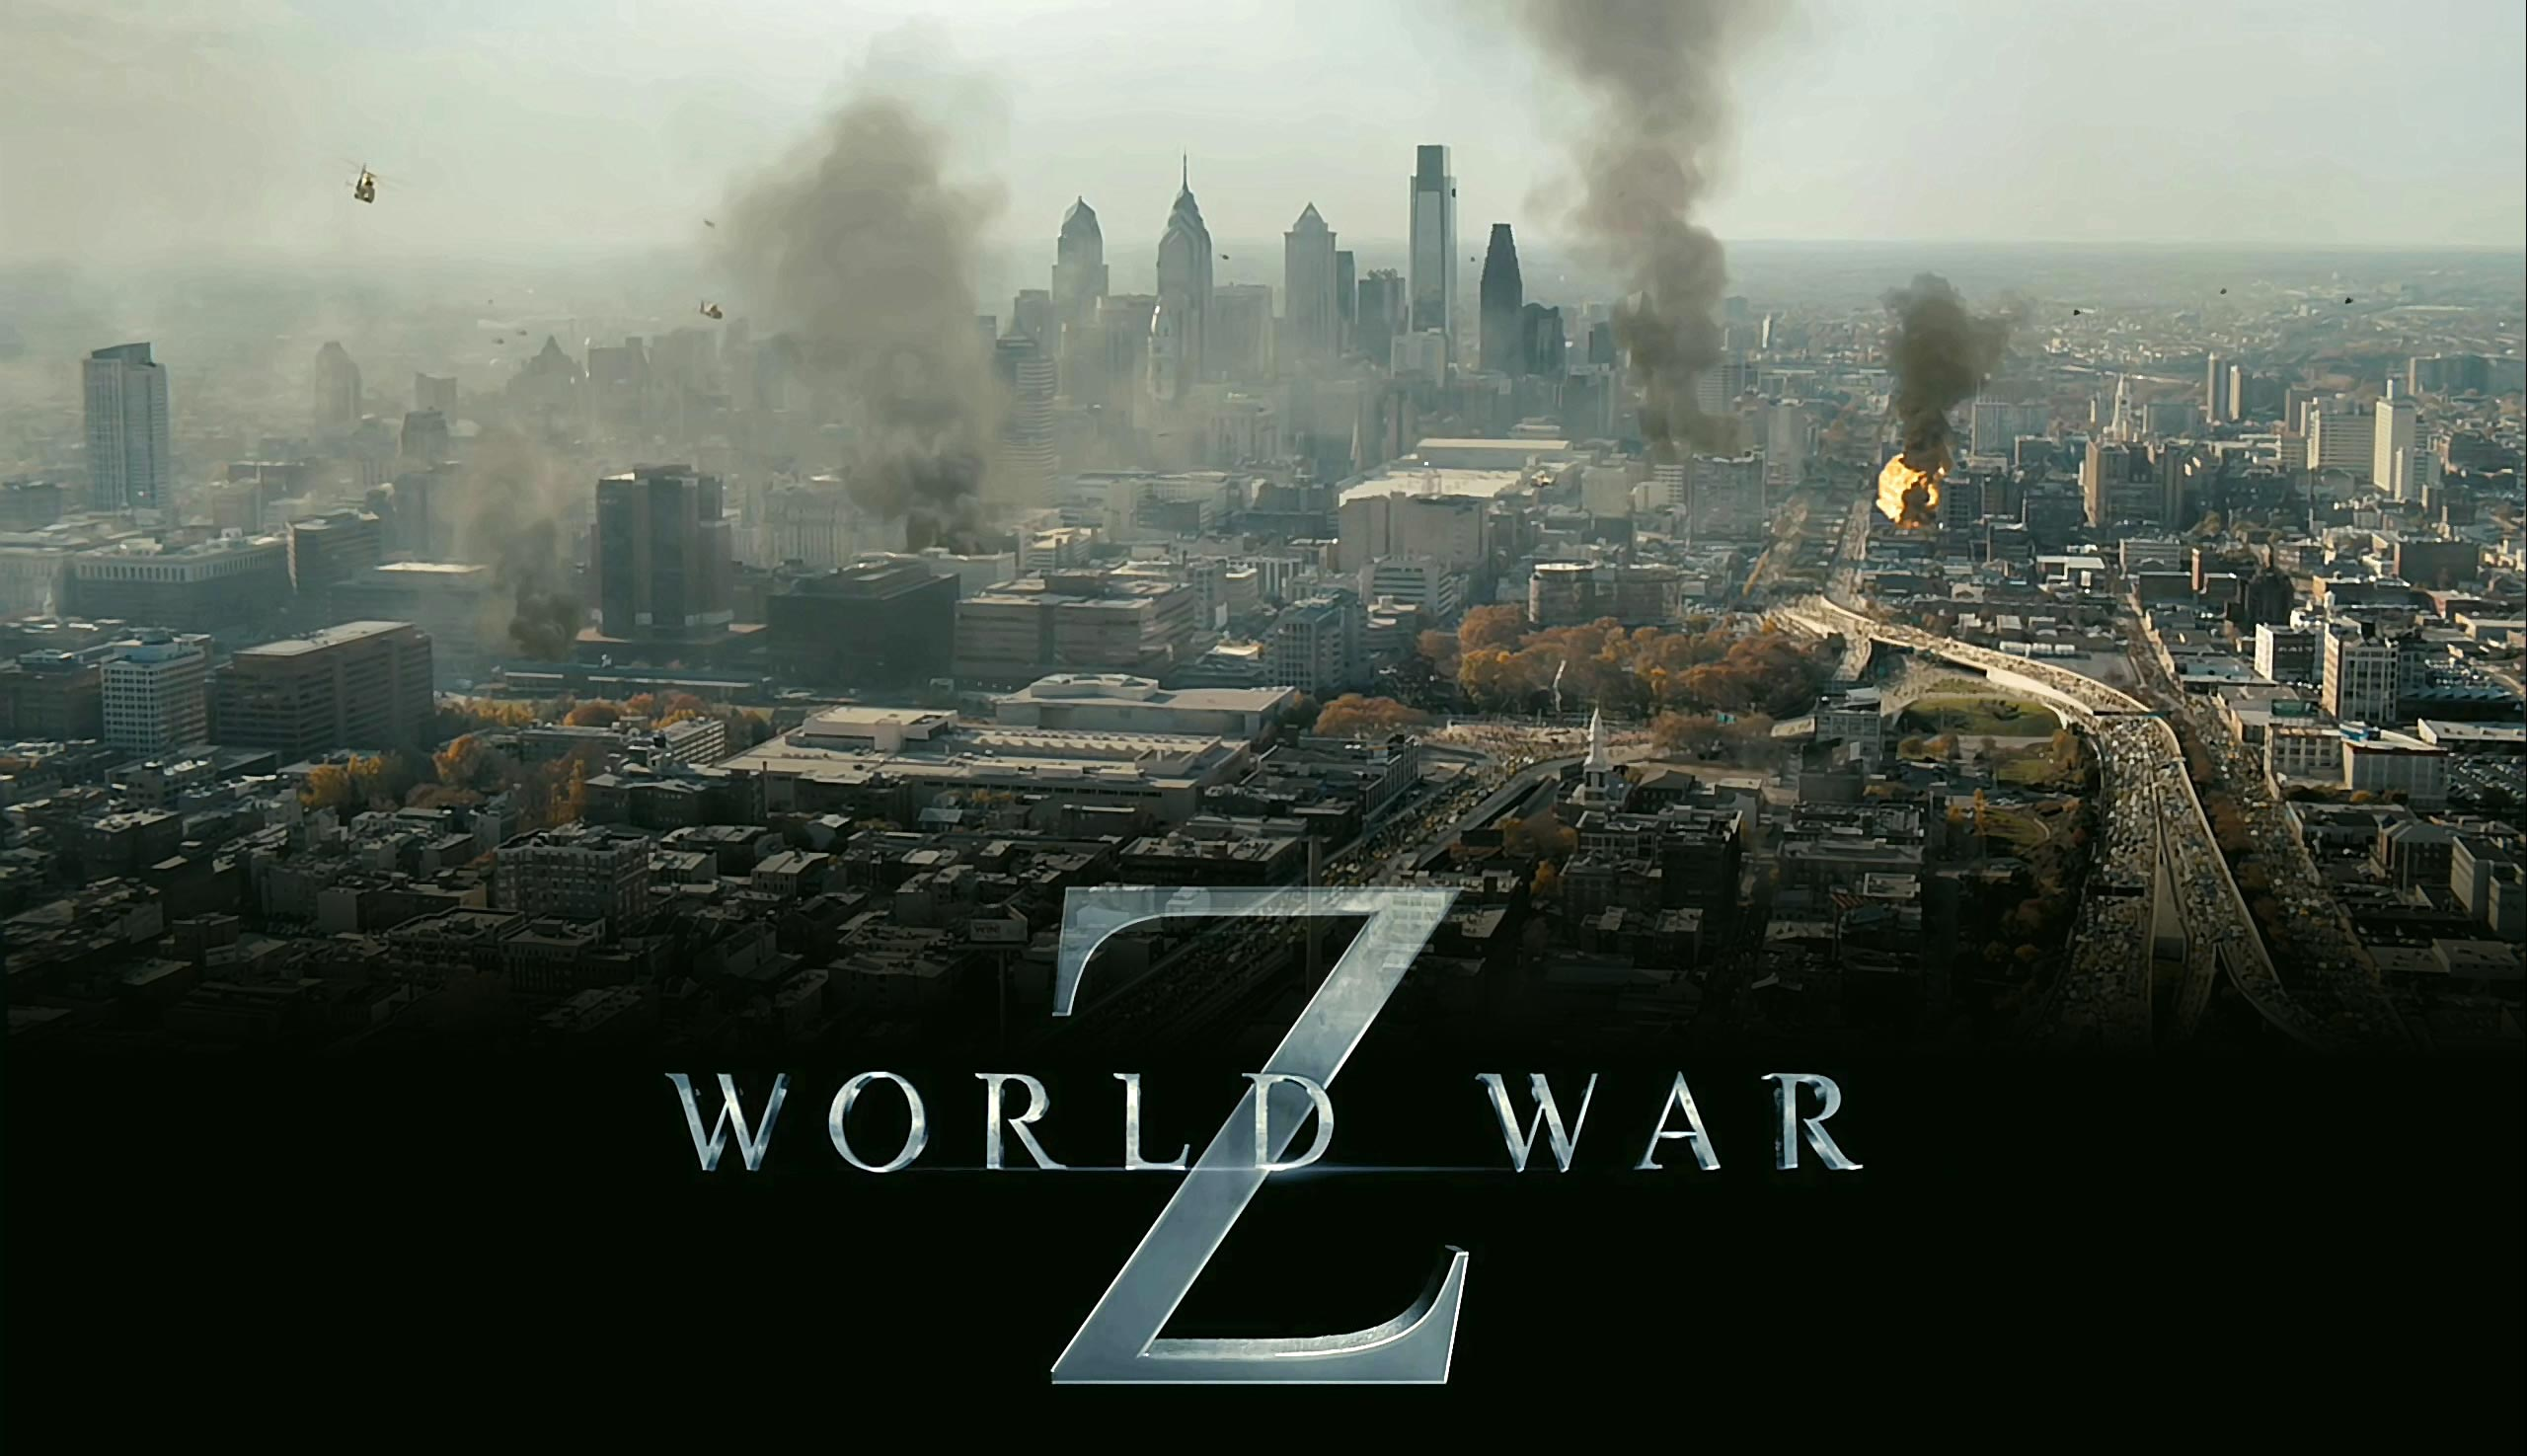 """WORLD WAR Z"" PREMIERES IN LONDON, MUSE TO PERFORM LIVE ON SUNDAY, JUNE 2ND"